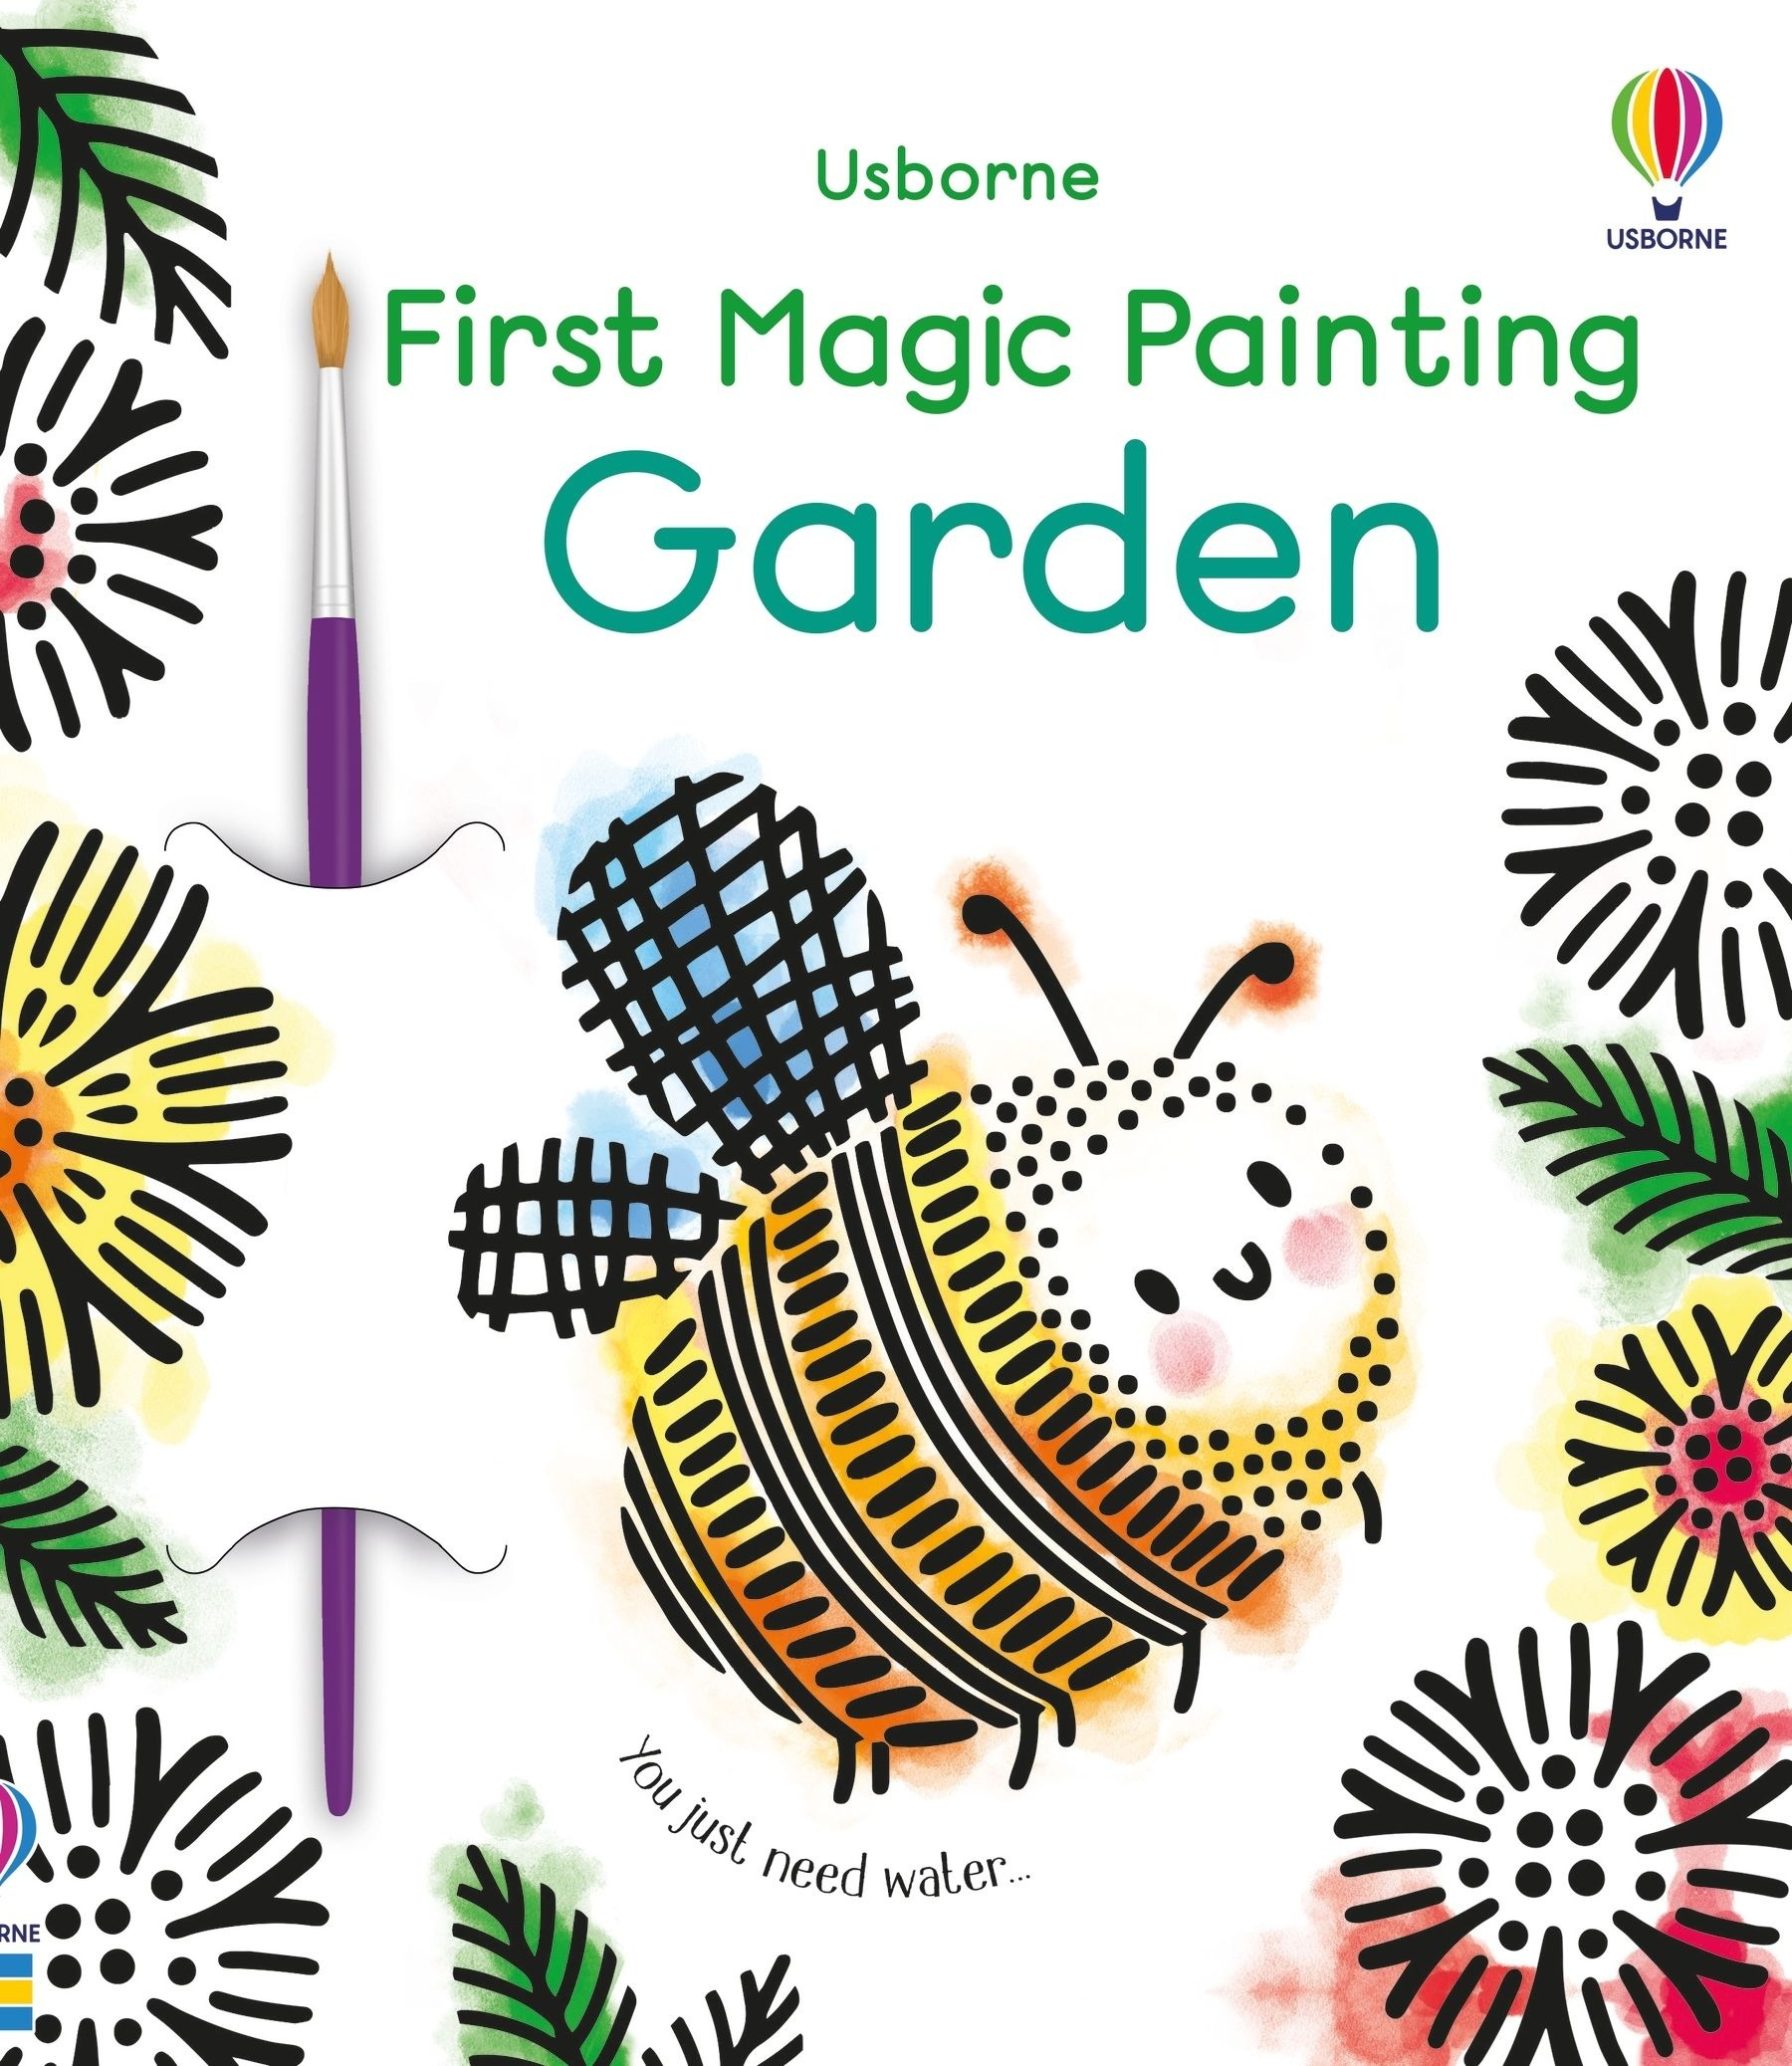 First Magic Painting Garden